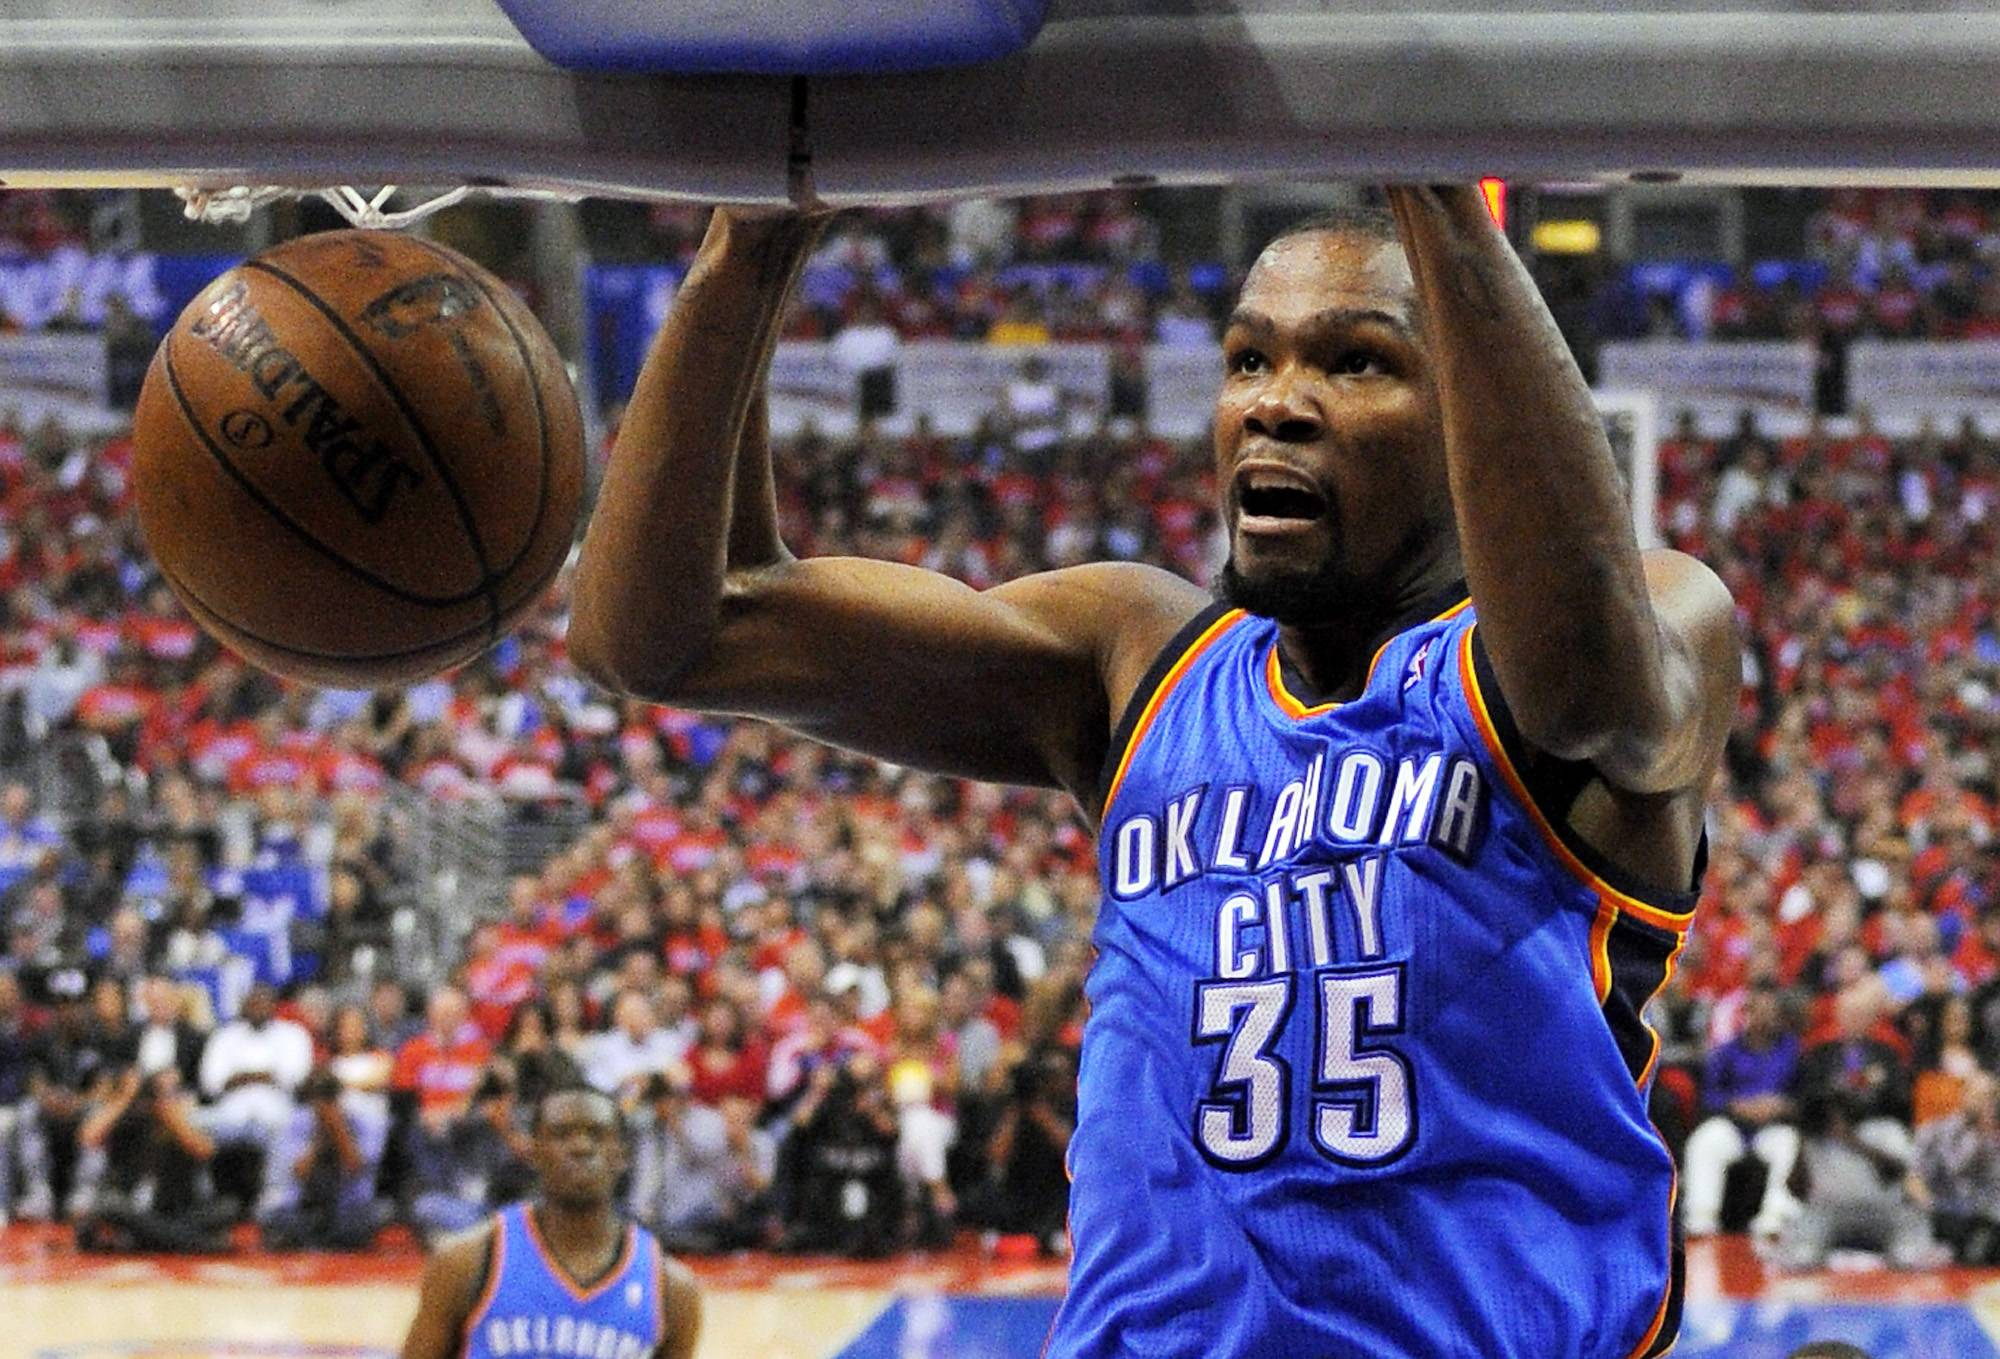 Oklahoma City Thunder forward Kevin Durant scored 36 points in Game 3 of the Western Conference semifinal NBA basketball playoff series against the Los Angeles Clippers Friday in Los Angeles. The Thunder won 118-112.